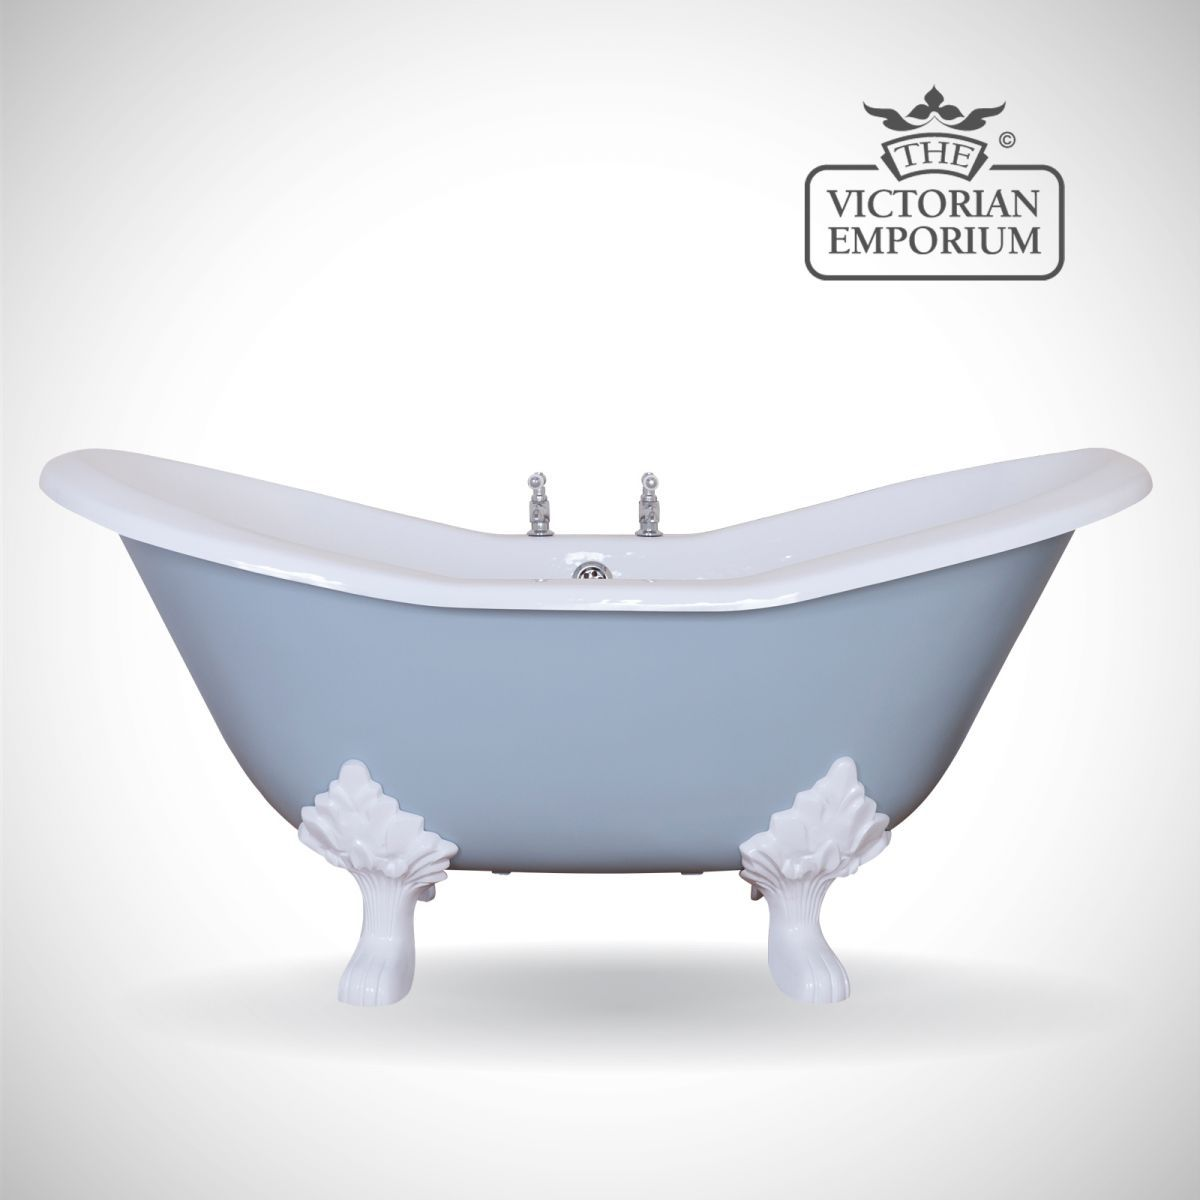 Buy Banbury cast iron bath - painted, Baths - The Banbury is a ...